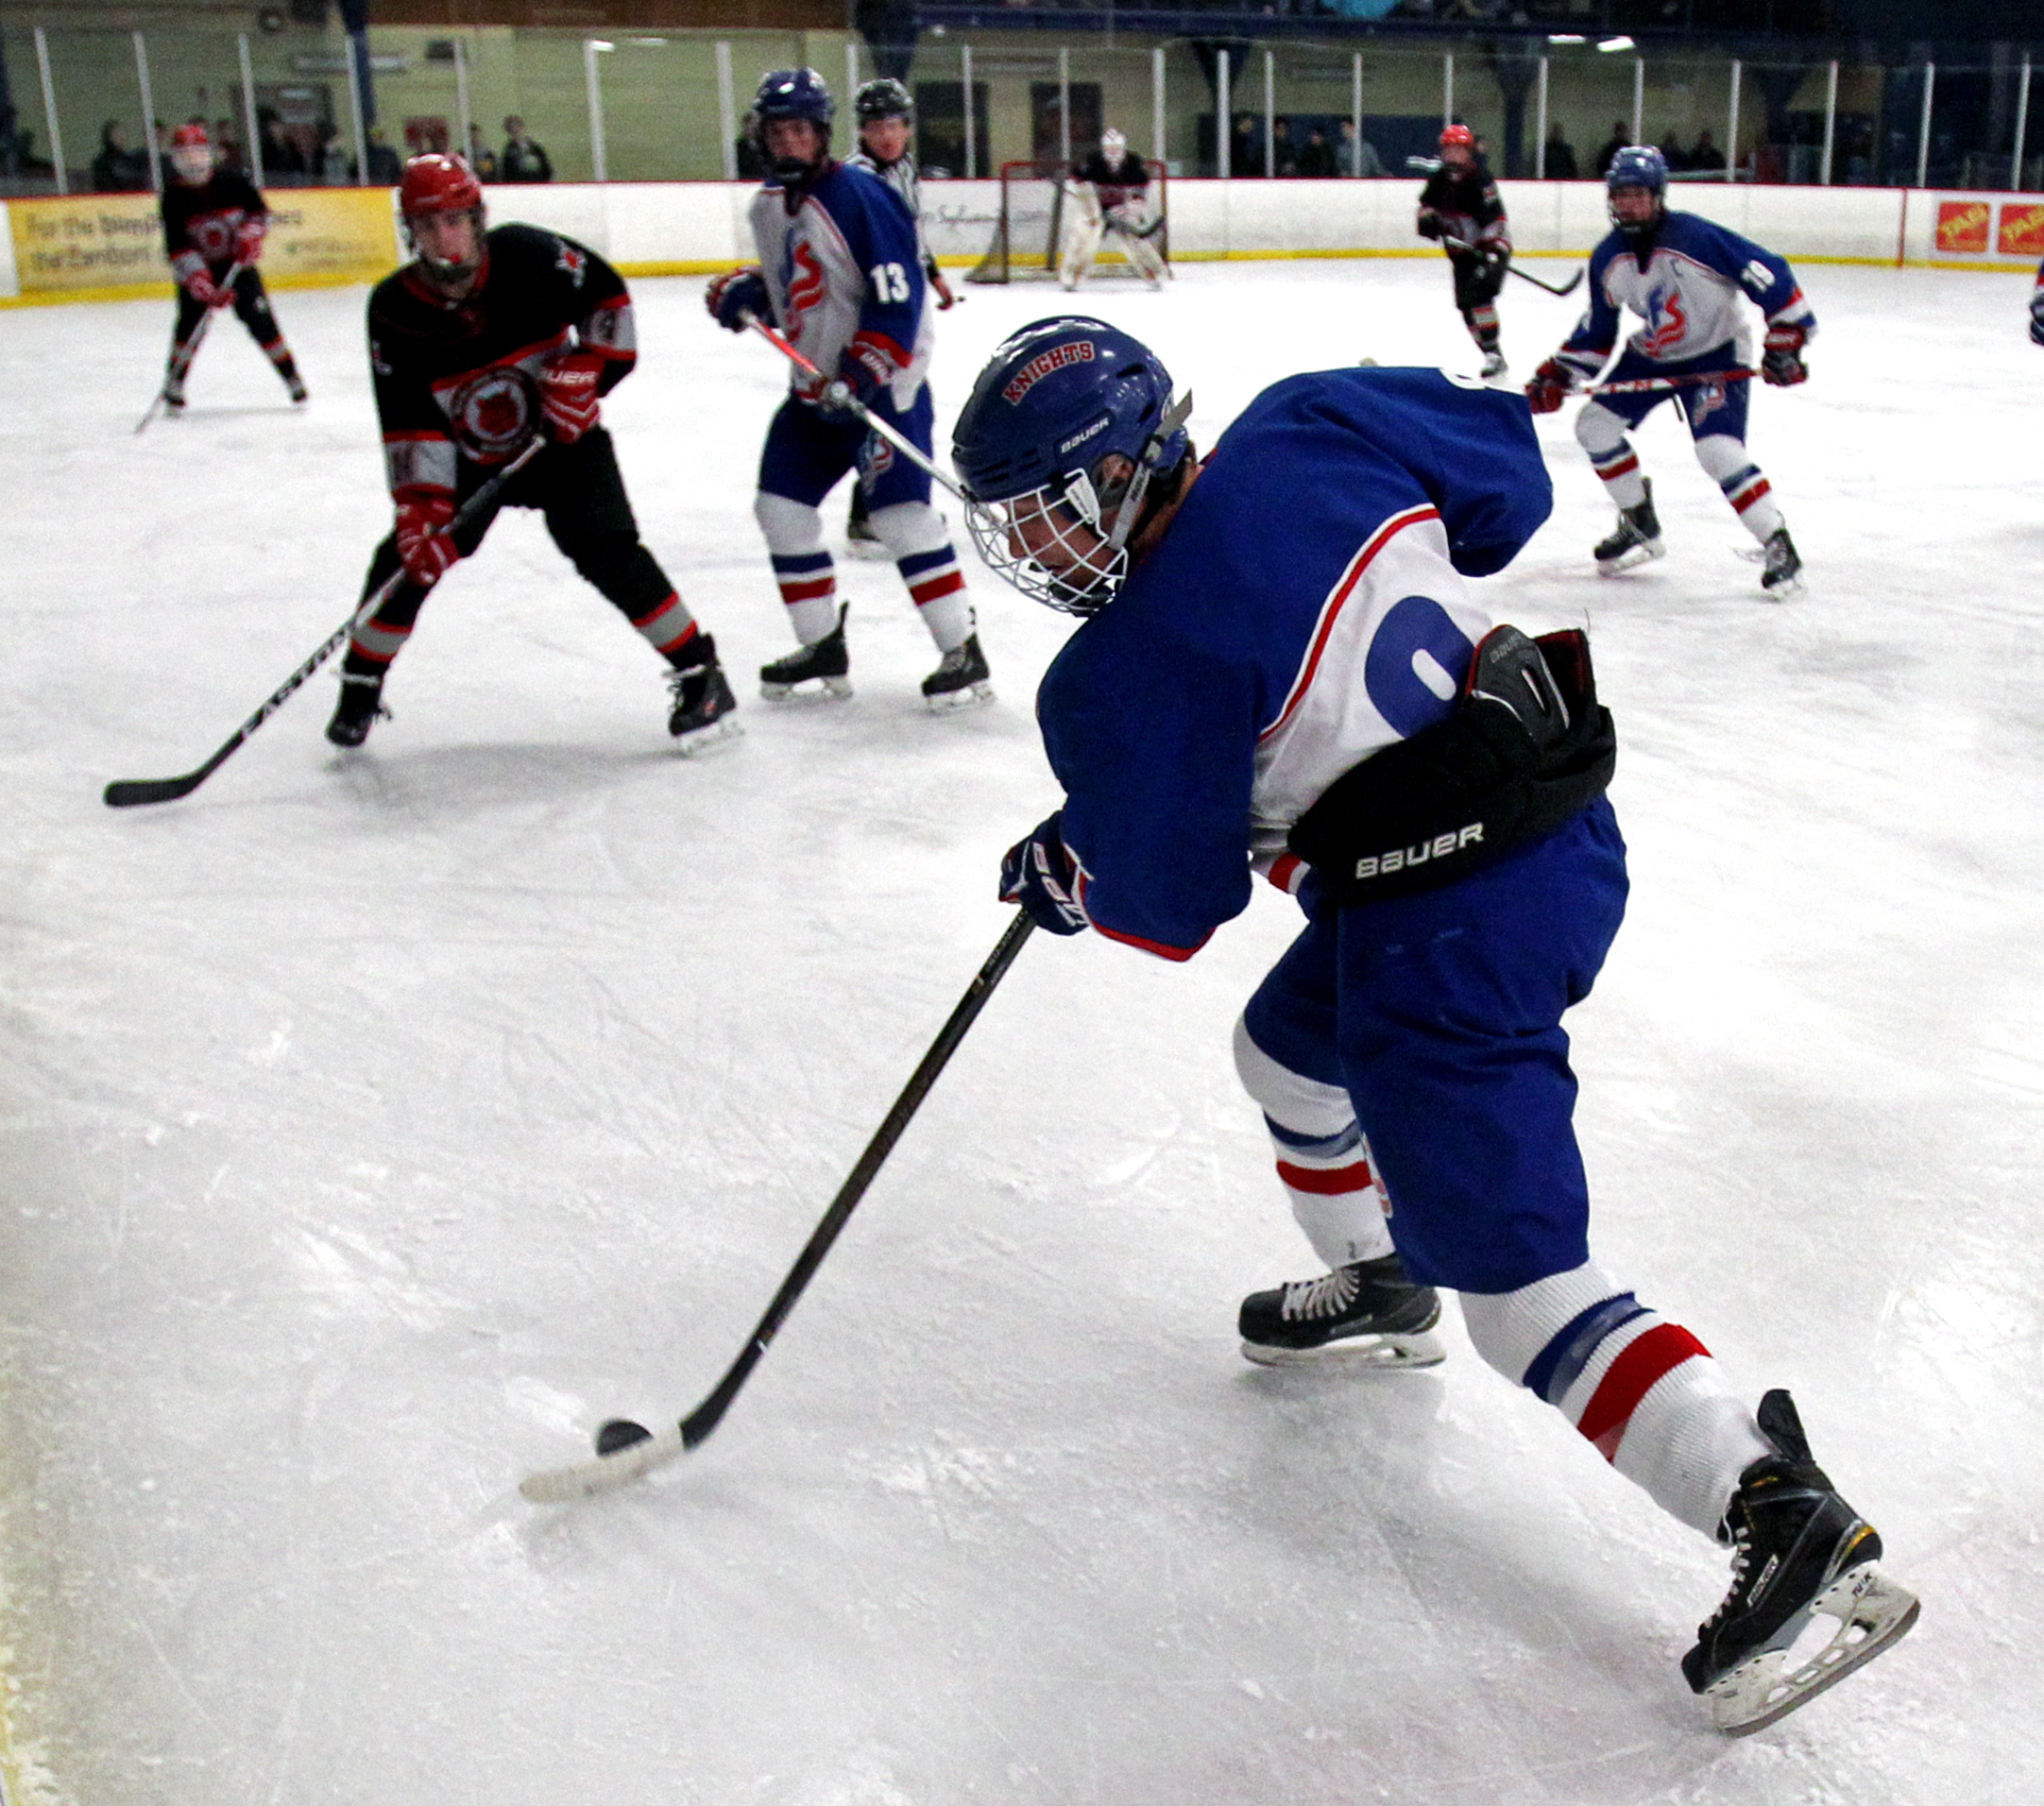 St. Francis de Sales defender Nick Kozma (8) moves the puck down rink while Bowling Green High School's Ryan Tyrrell blocks his path during the boy's hockey game at Tam-O-Shanter ice Arena in Sylvania Oh. on Friday, Dec. 9, 2016.